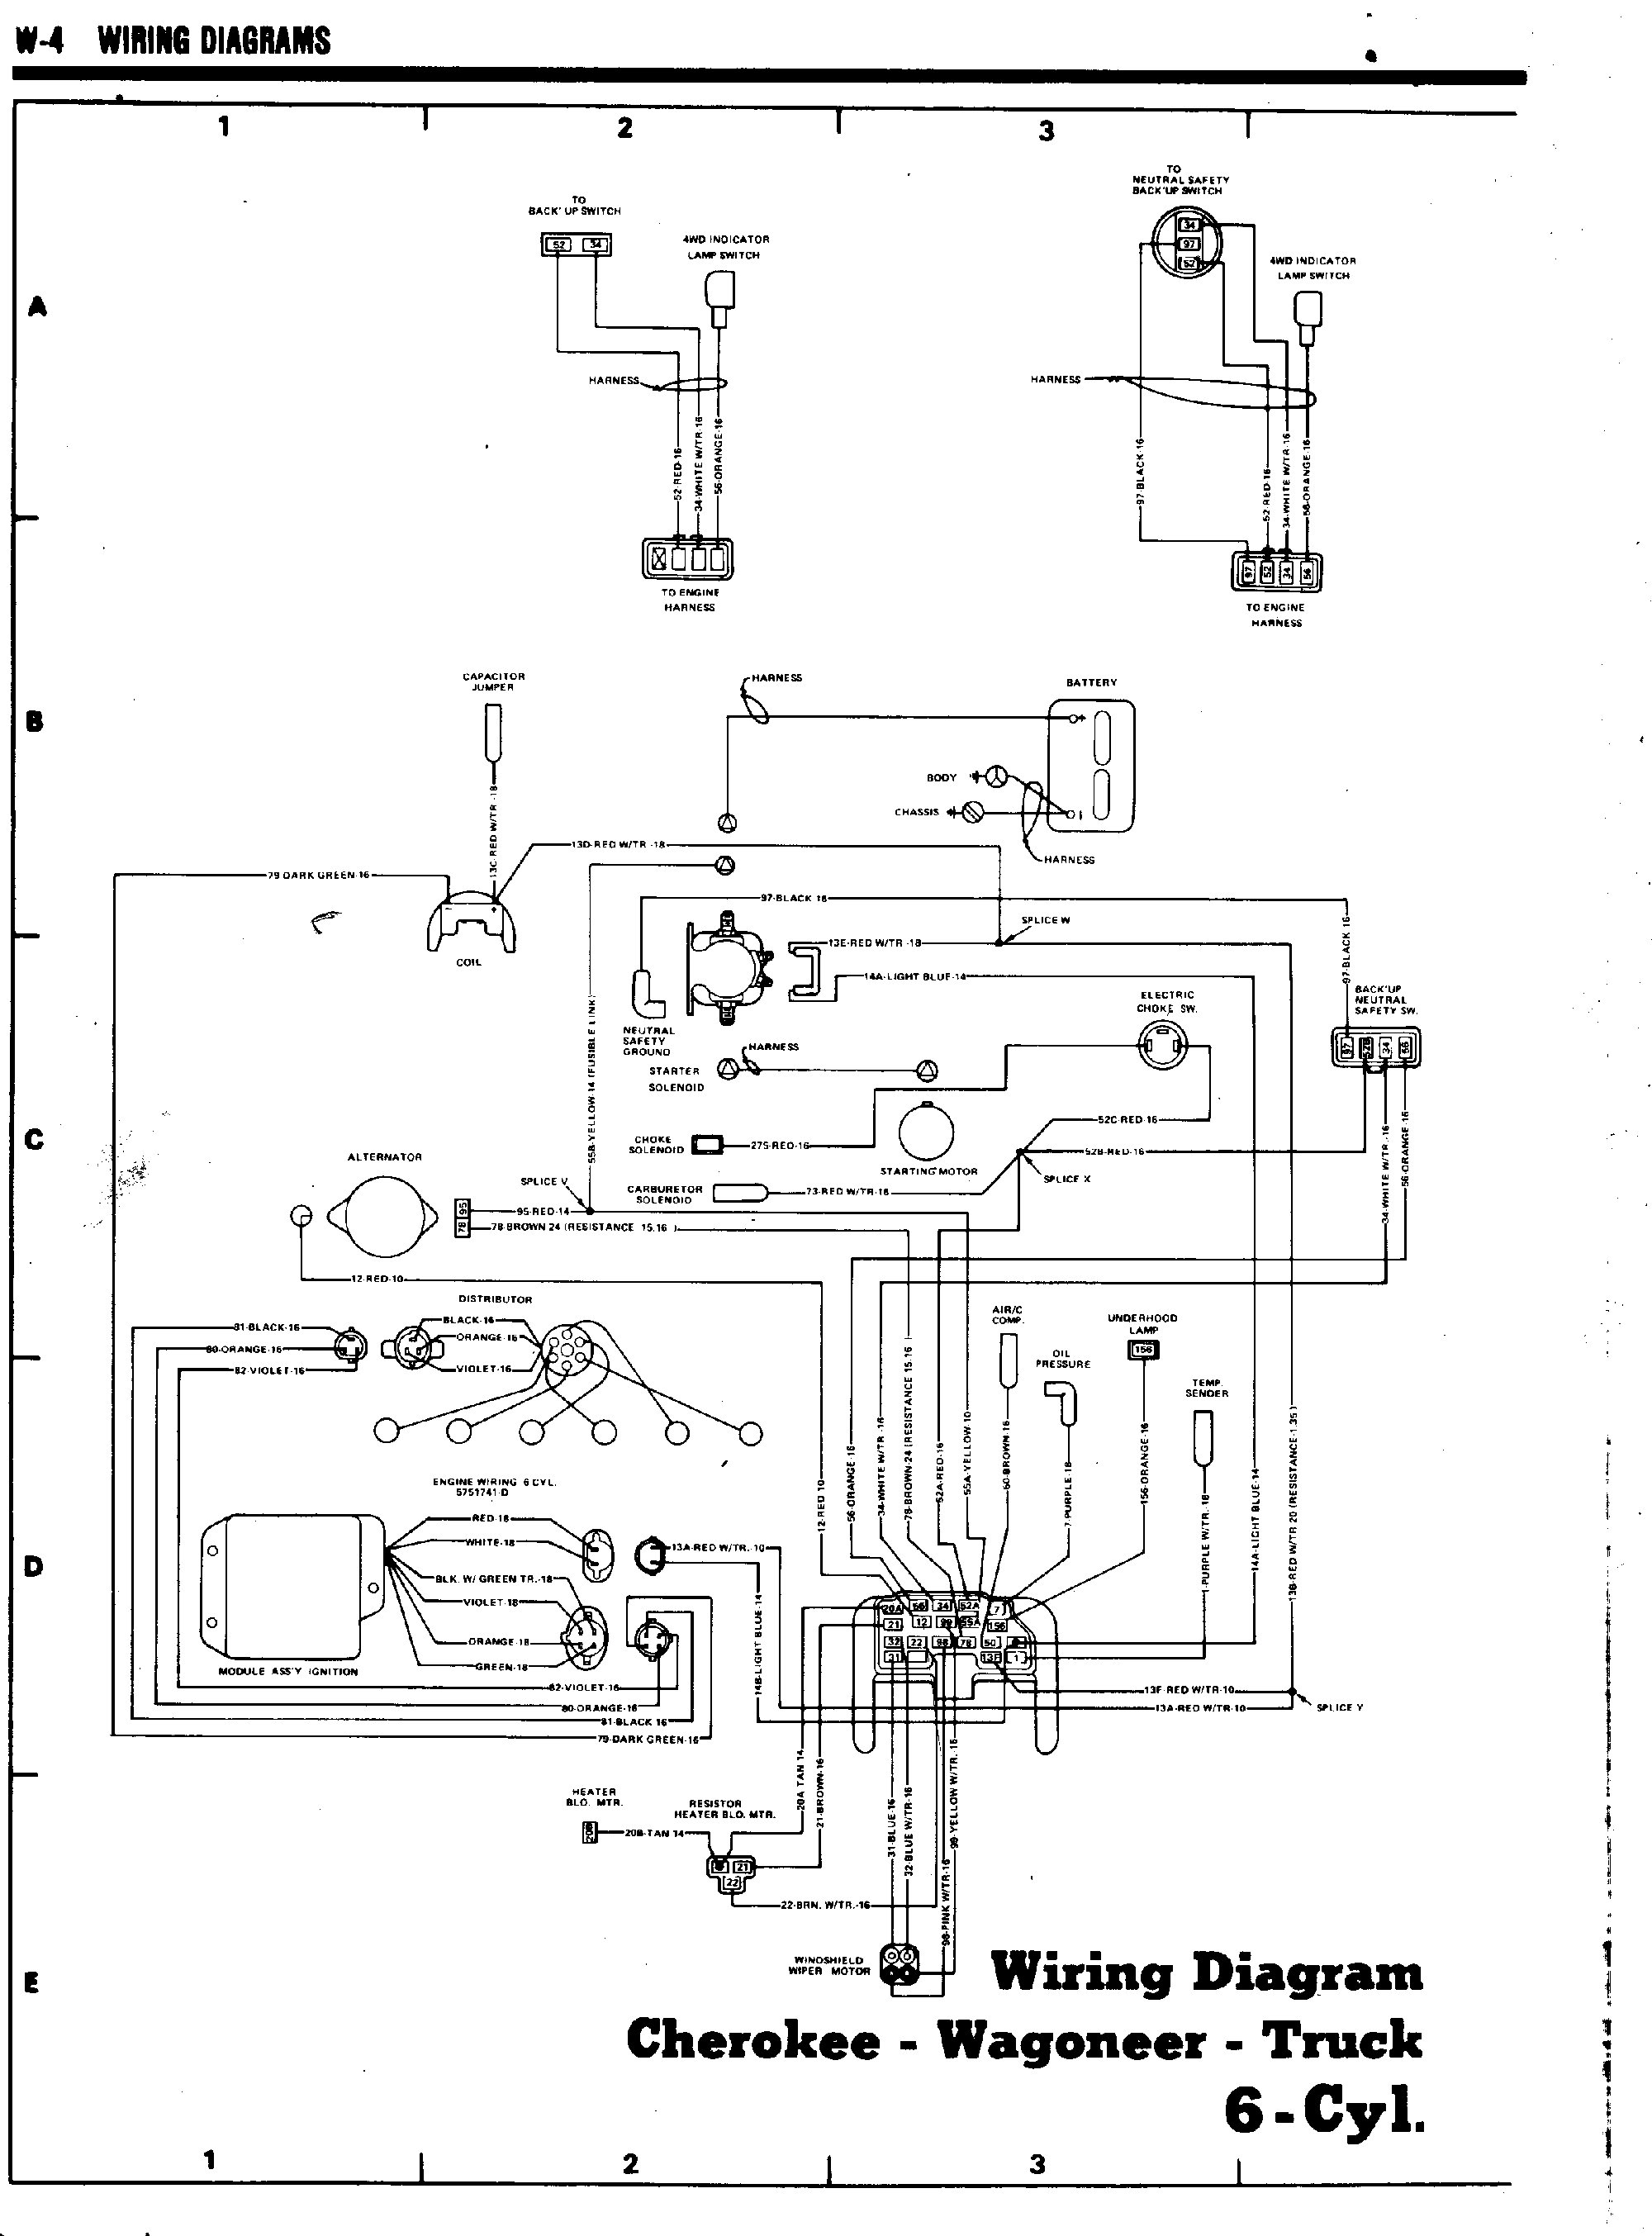 Jeep Wagoneer Wiring Diagram Data Wiring Schema 1977 Jeep CJ7 Wiring-Diagram  1985 Jeep Cj7 Wiring Diagram